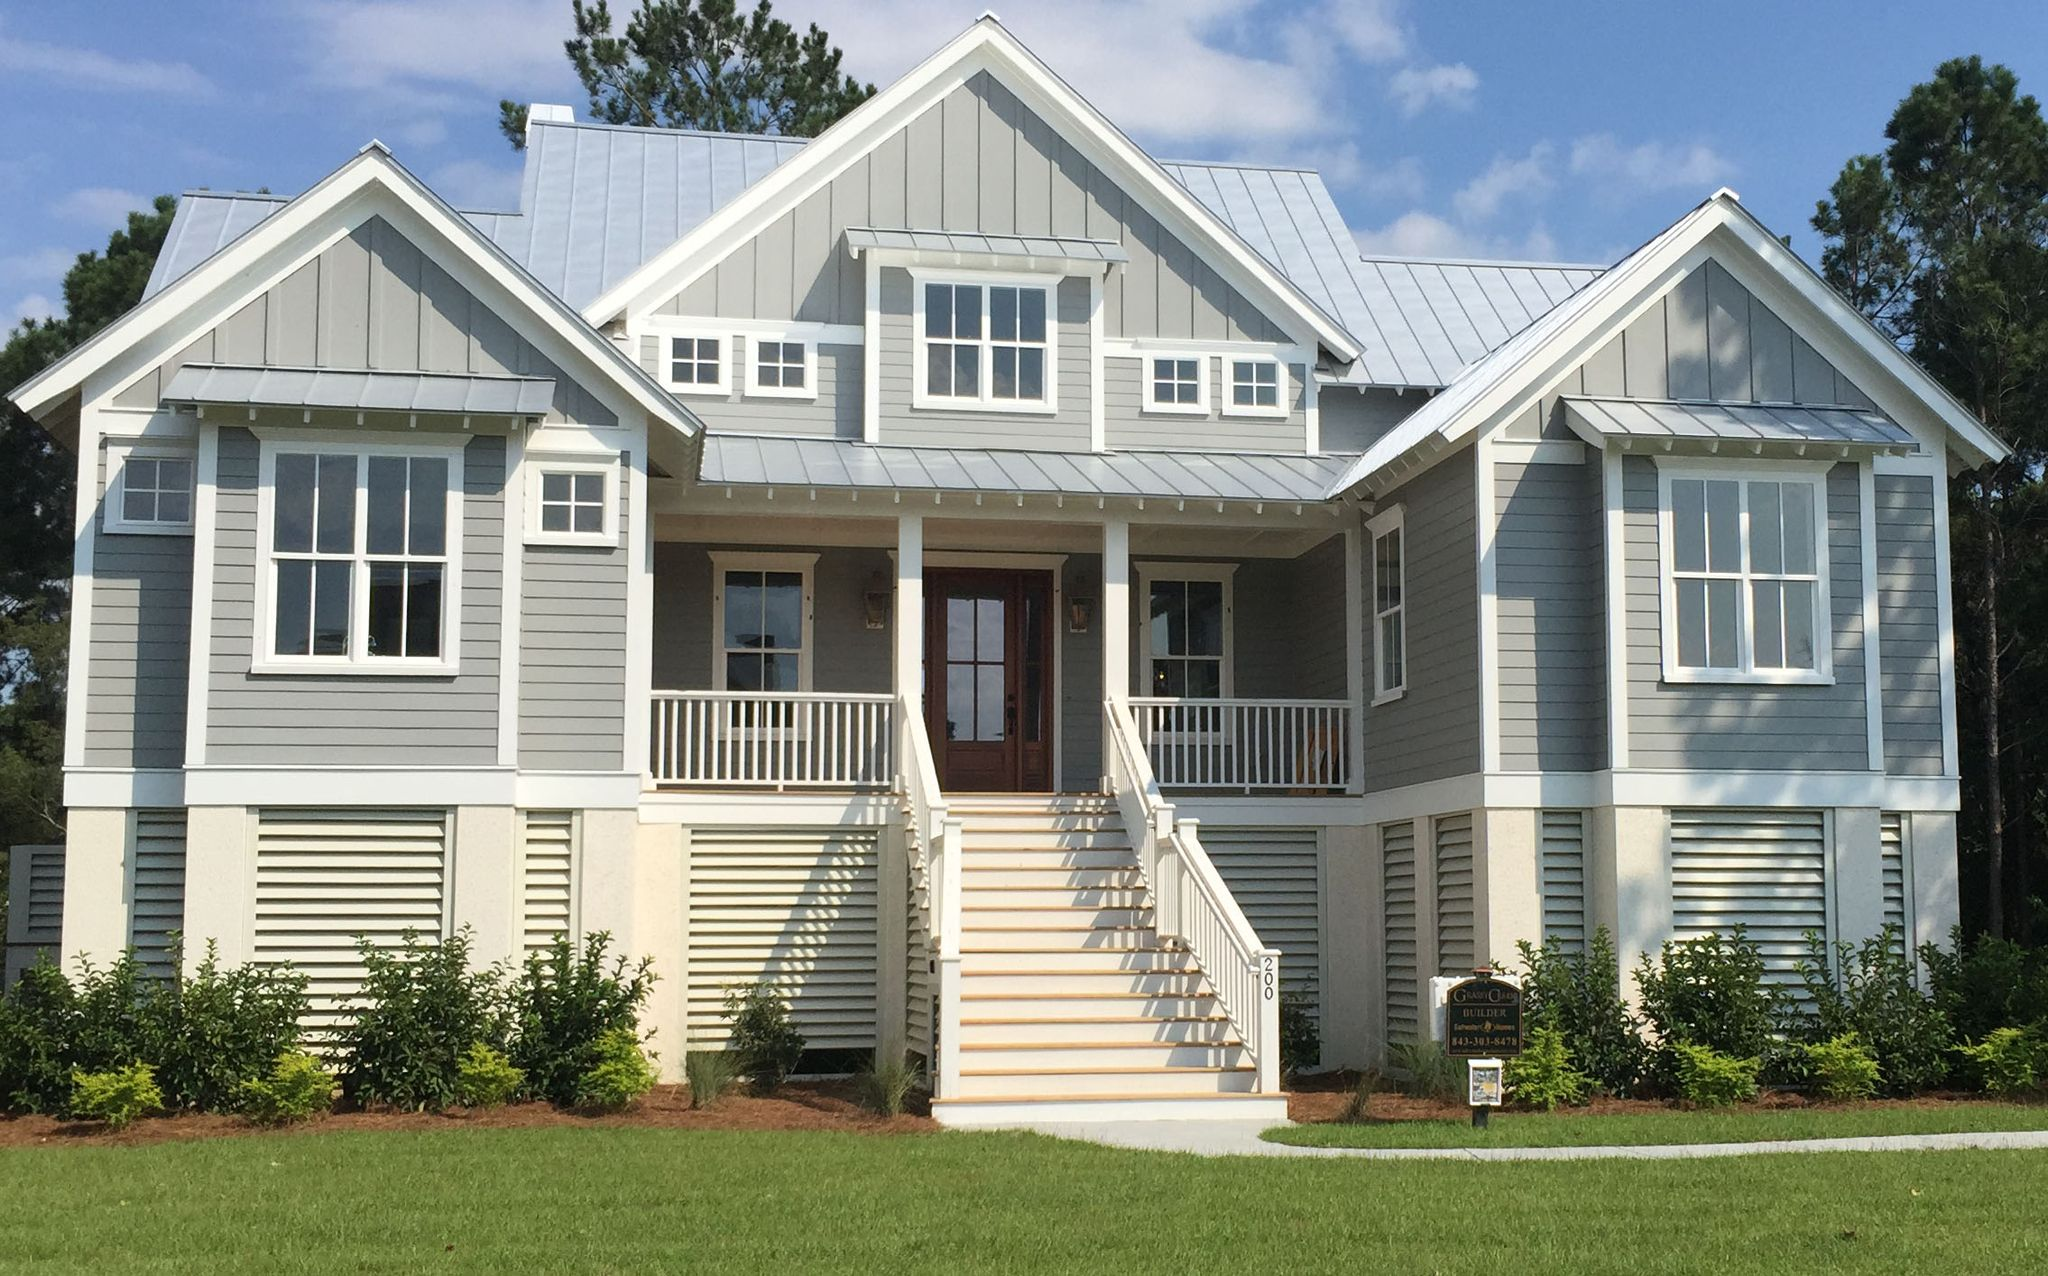 Affordable Custom Home Plans, Specializing In Coastal And Elevated Homes.  Purposeful, Affordable, Coastal Cottage Home Plans.